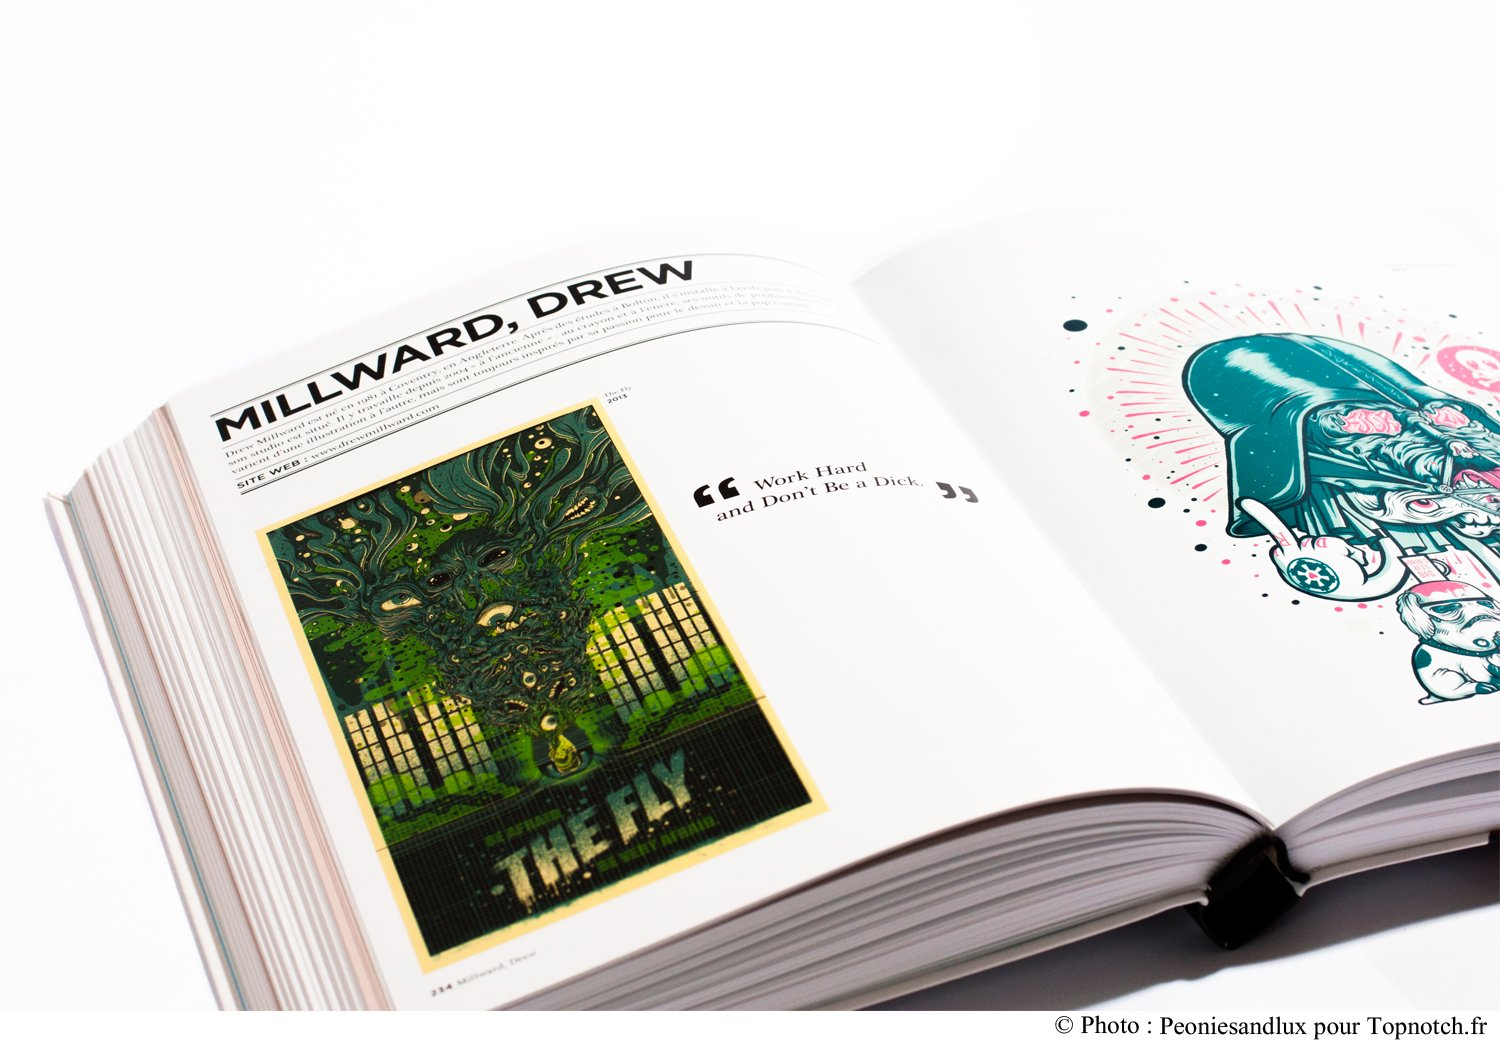 [bank] liste d'ART BOOK 717kBP3e2CL